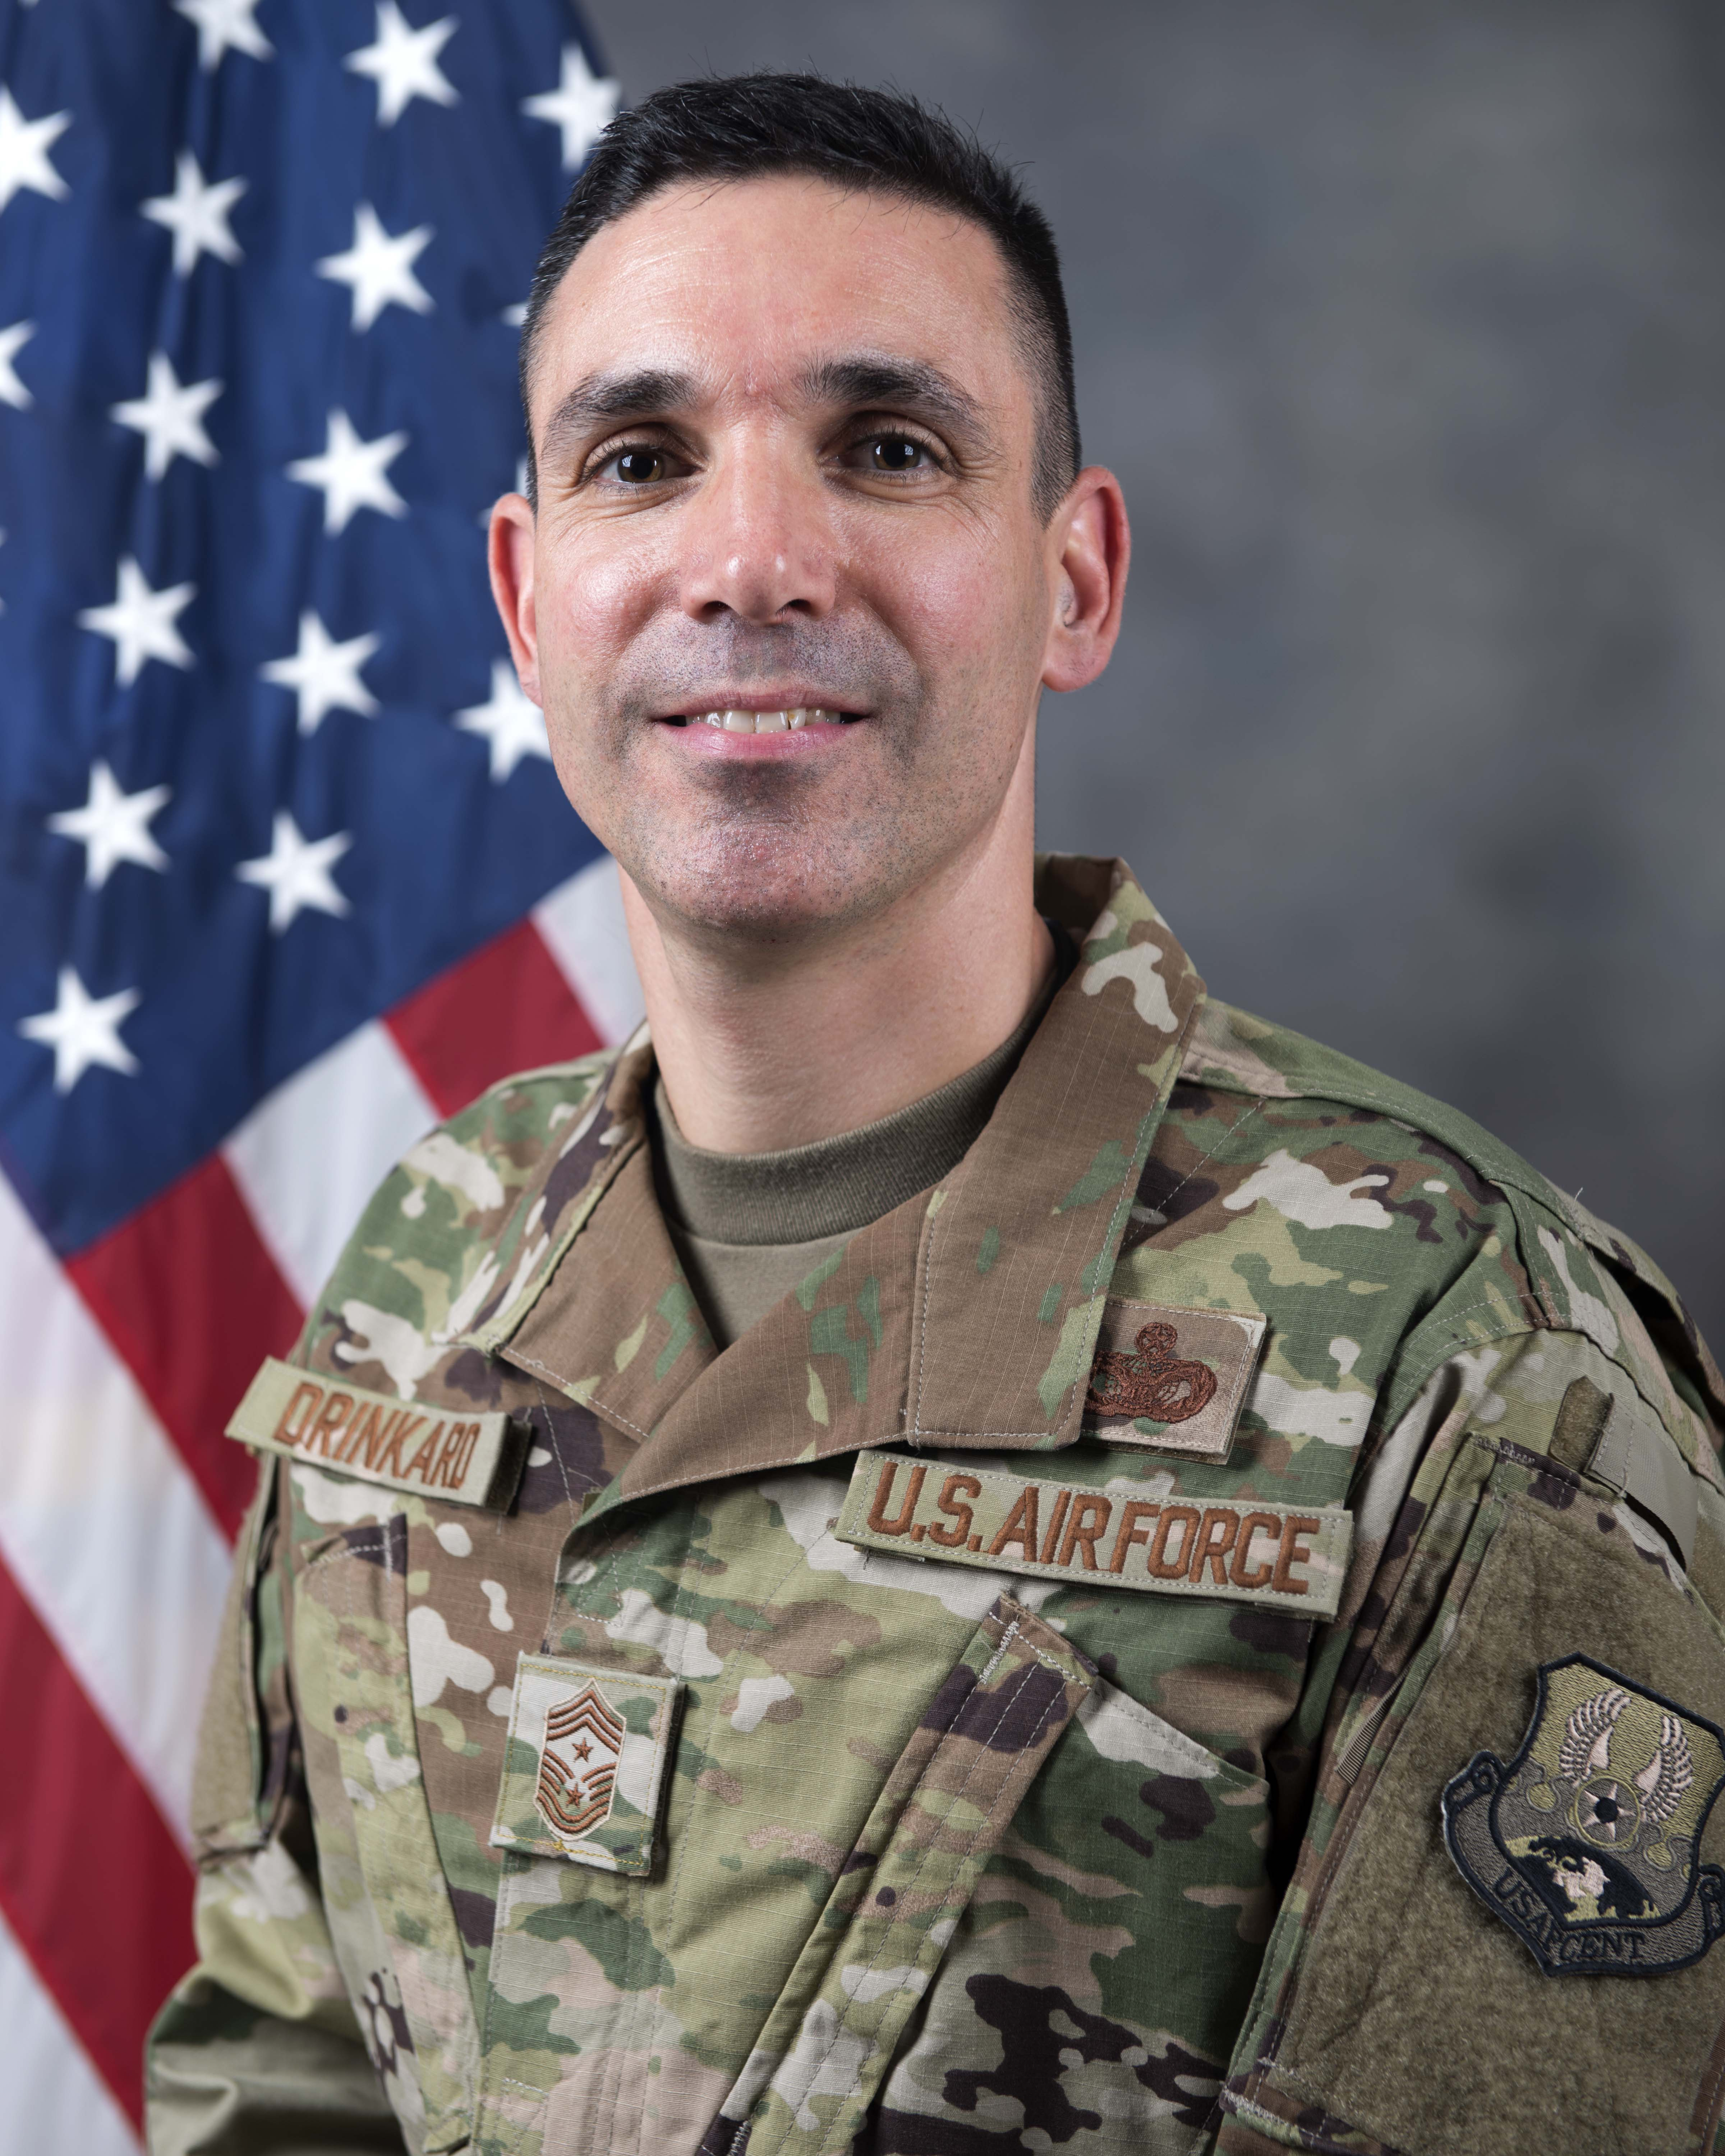 Chief Master Sgt. Shawn L. Drinkard